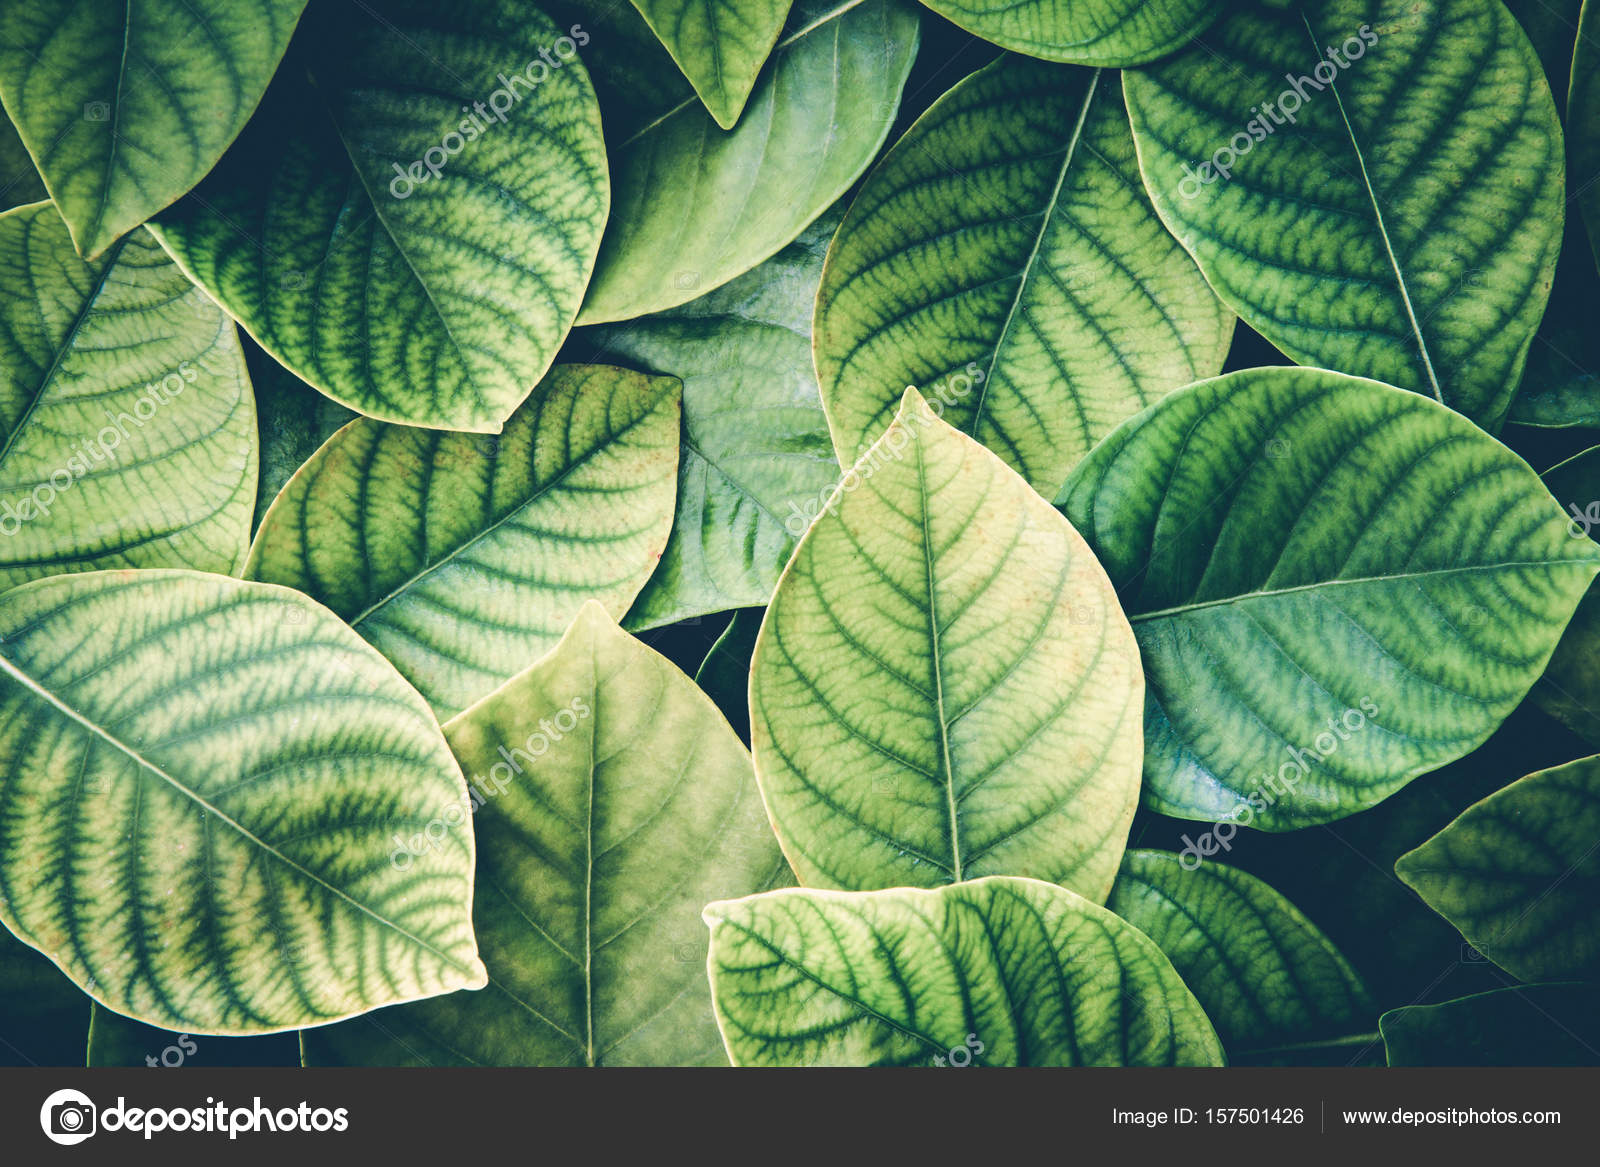 The Fresh Tropical Green Leaves Background Retro Vintage Color Stock Photo C Photorista 157501426 Leaf tropical green alpha masked. https depositphotos com 157501426 stock photo the fresh tropical green leaves html